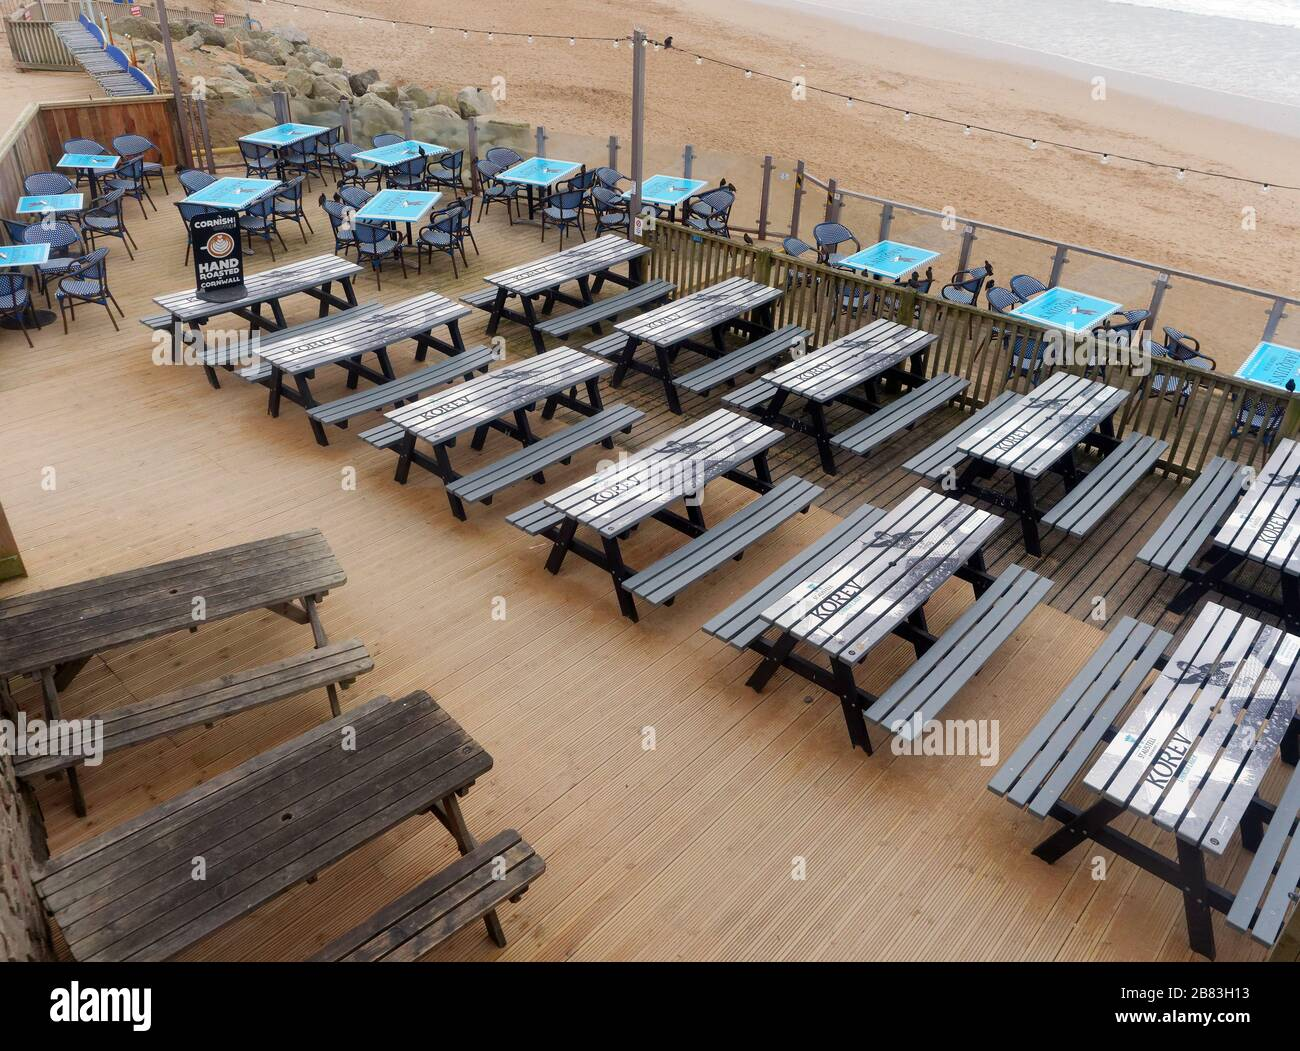 UK Weather, 19th March 2020. UK Fistral beach Newquay Cornwall. bars cafes and amusement arcades left deserted as public heed advice to stay away. Cre Stock Photo